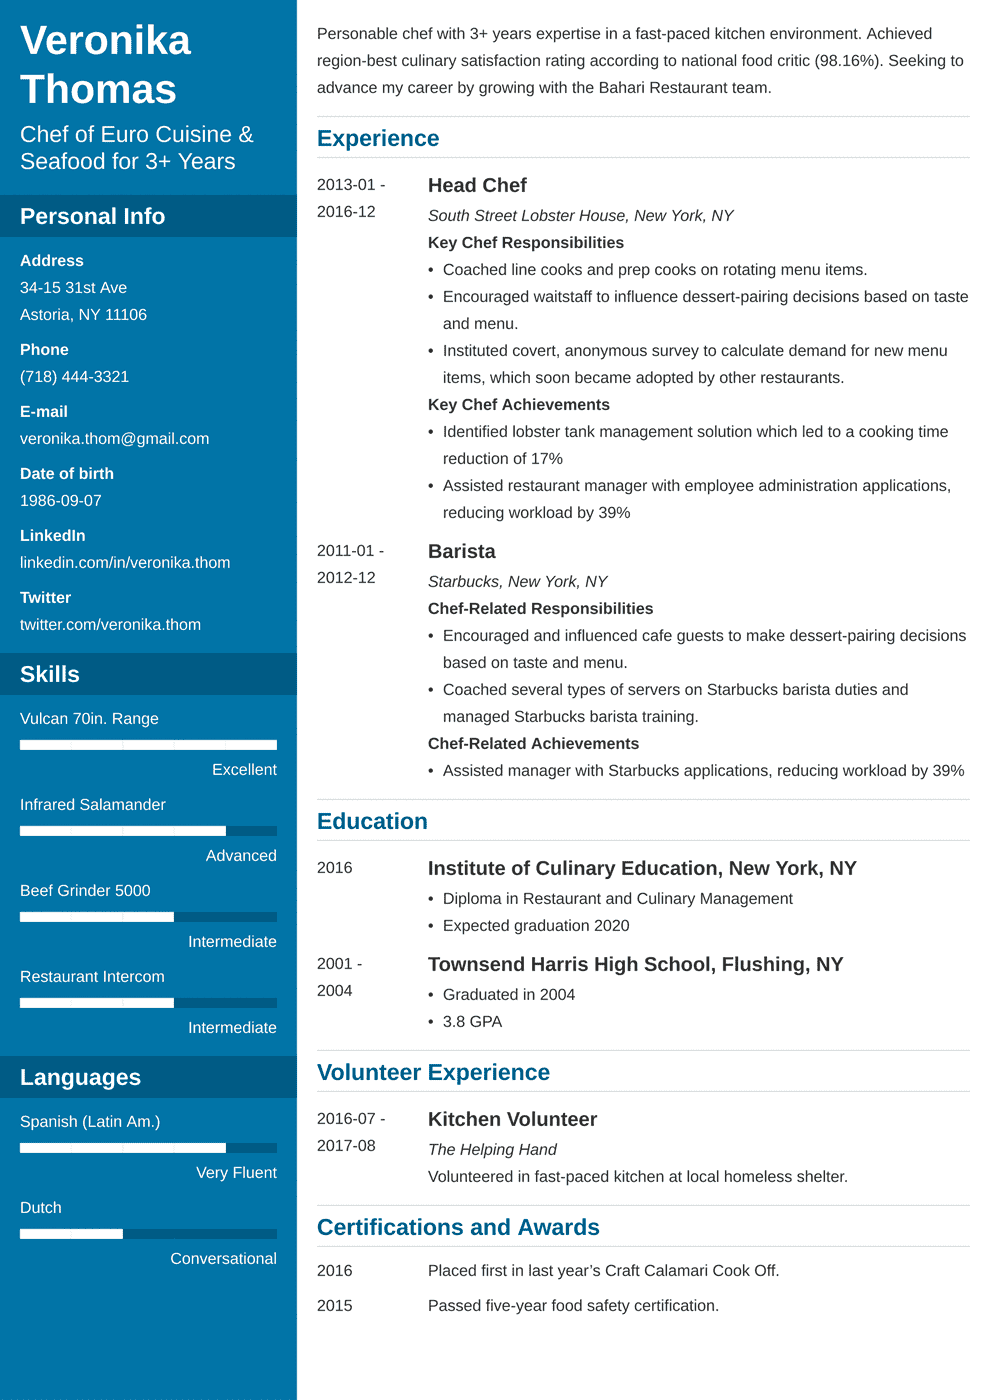 Chef Resume Examples: Template & Essential Skills